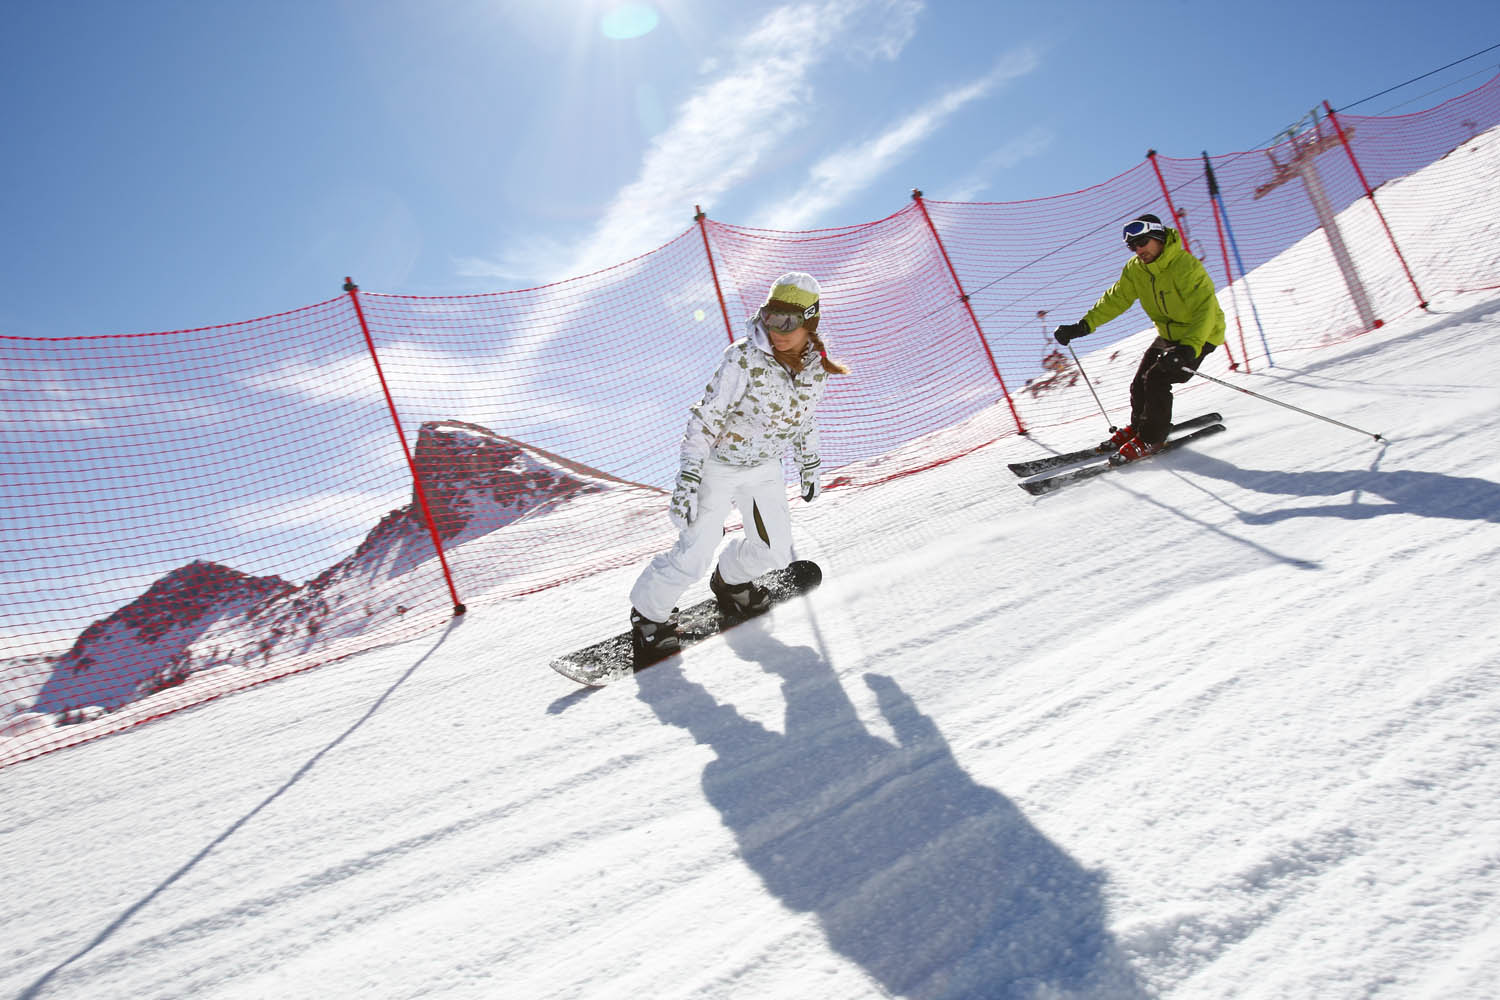 Briancon Ski Slopes